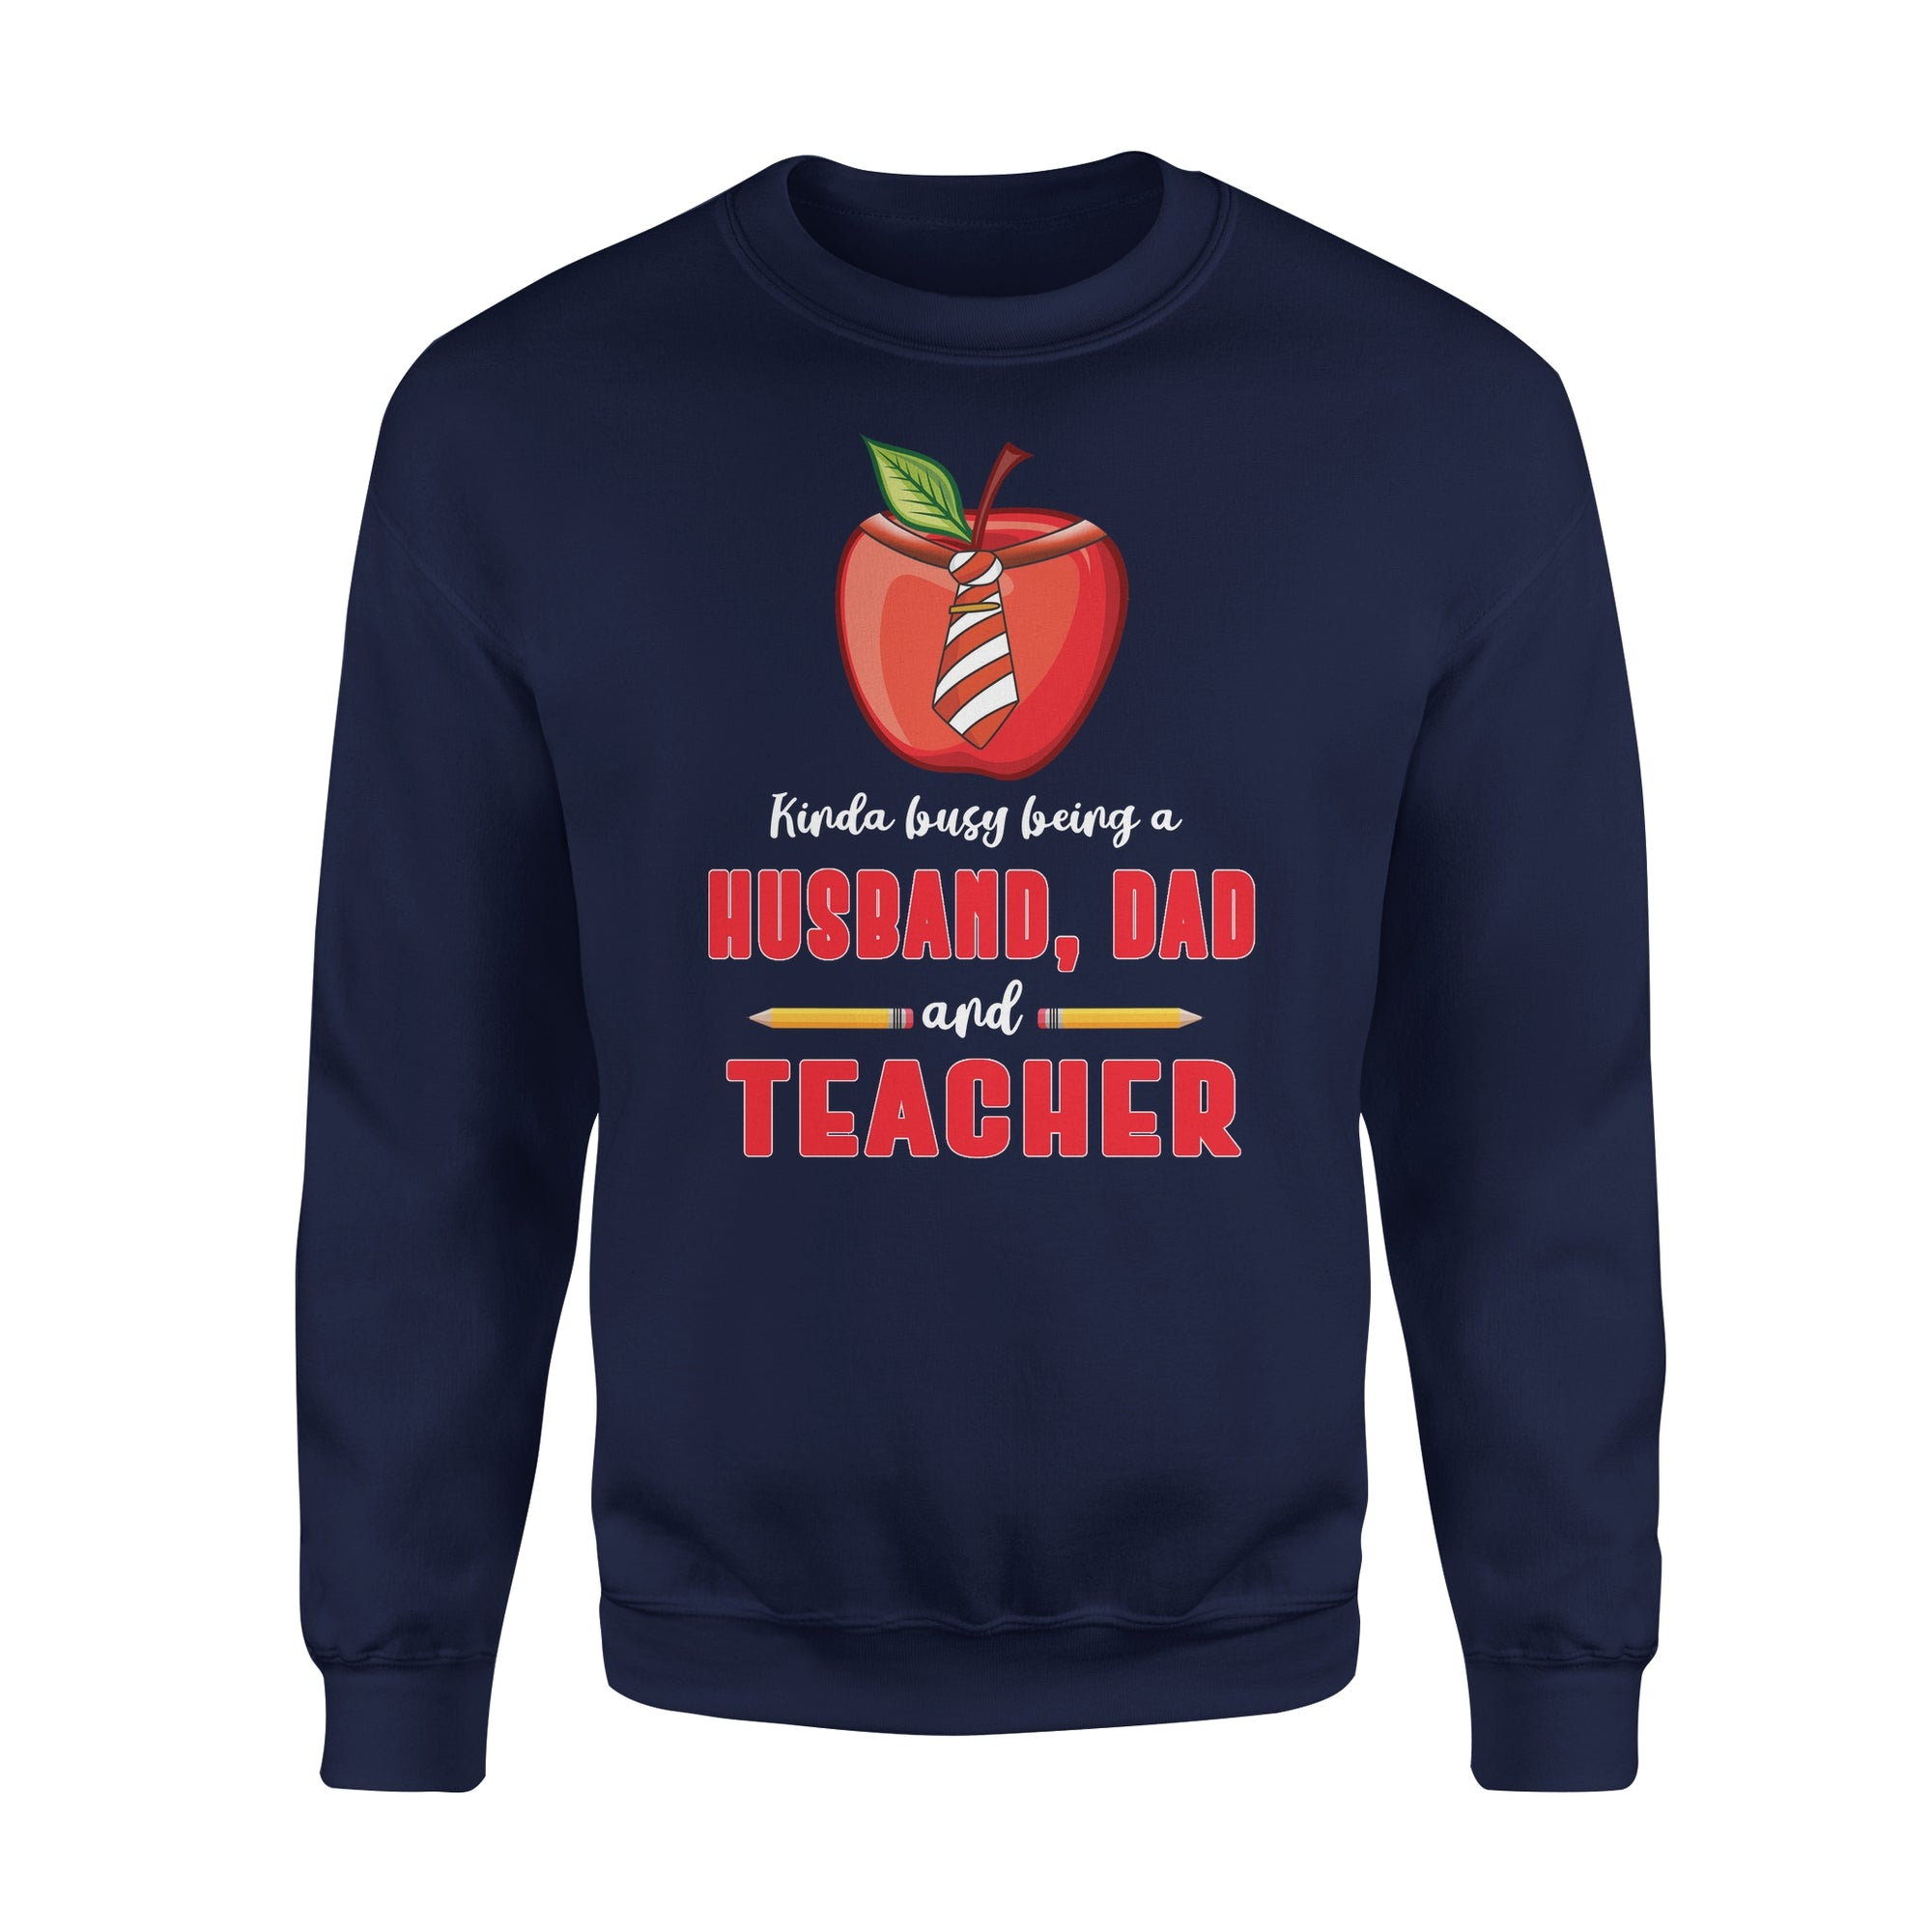 VIRA Premium Fleece Sweatshirt for awesome teachers & dads